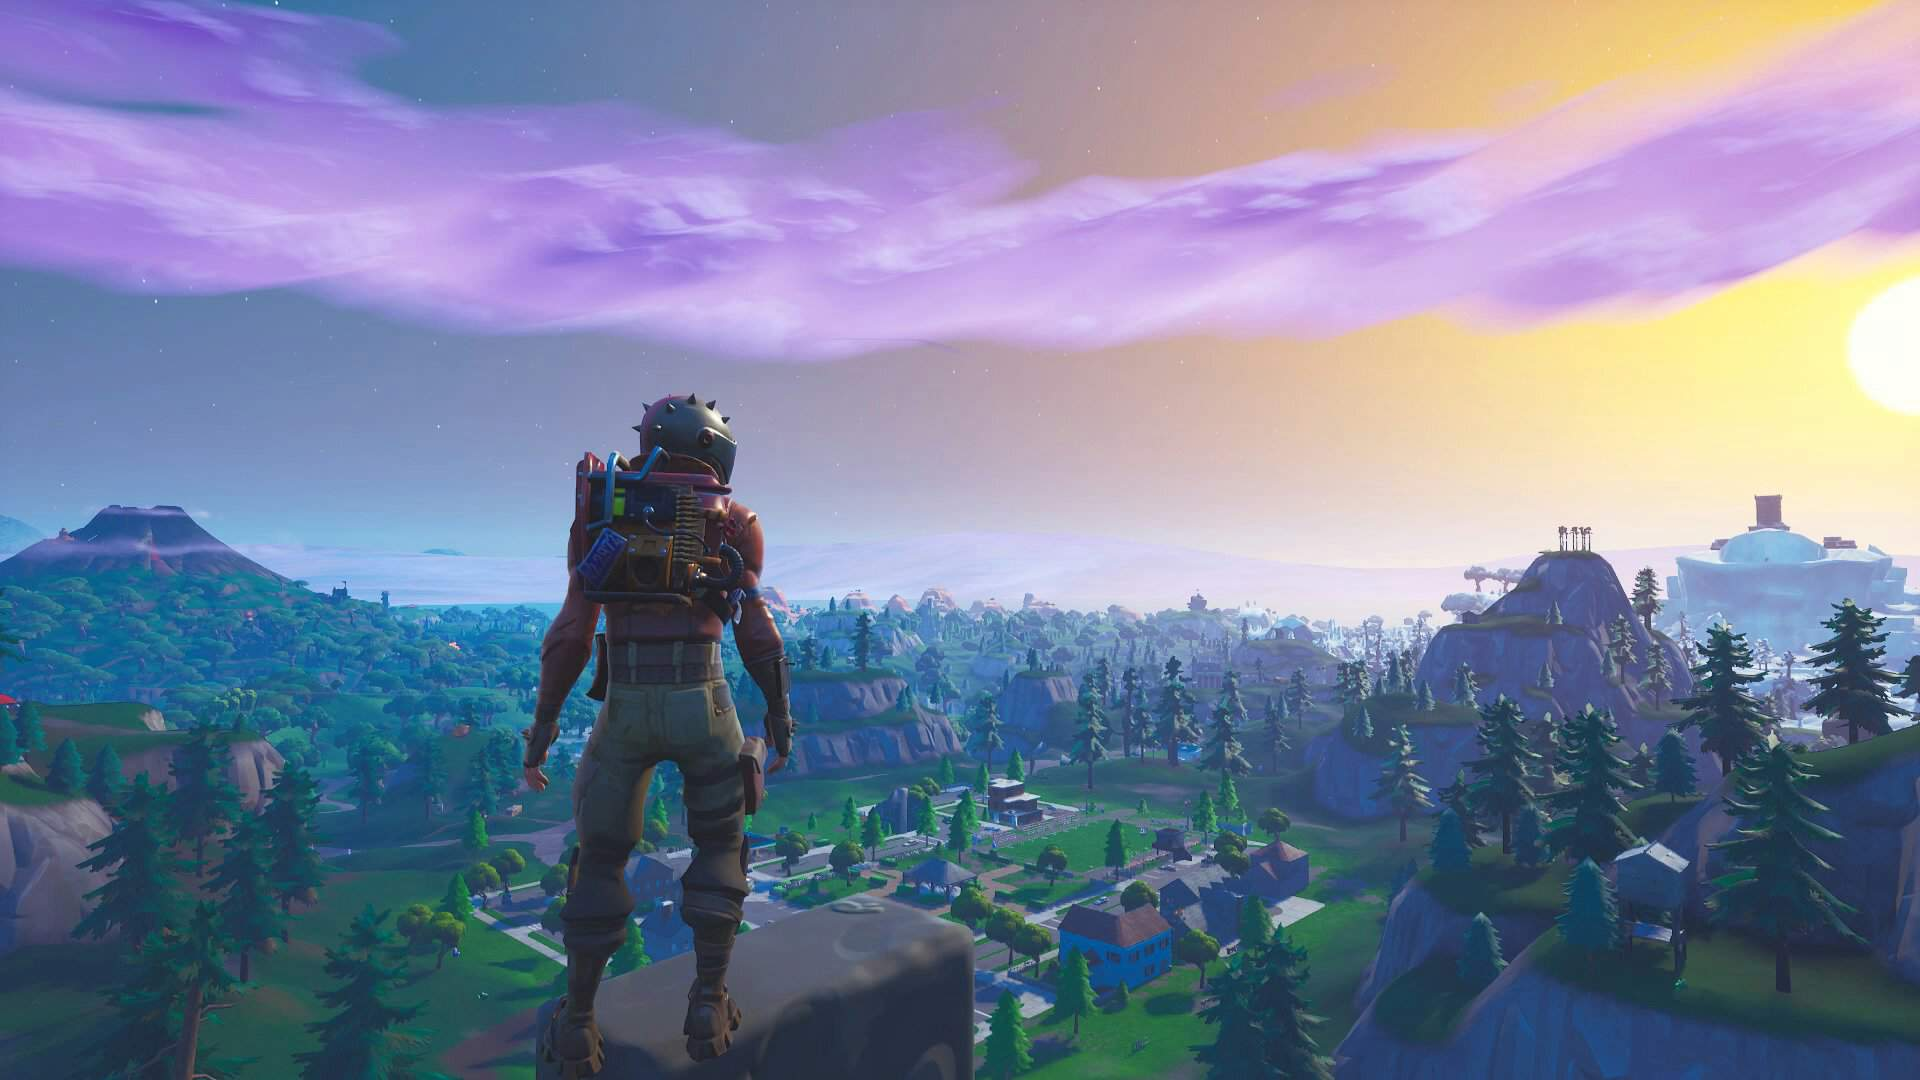 'Fortnite' is getting a PS4-exclusive tournament